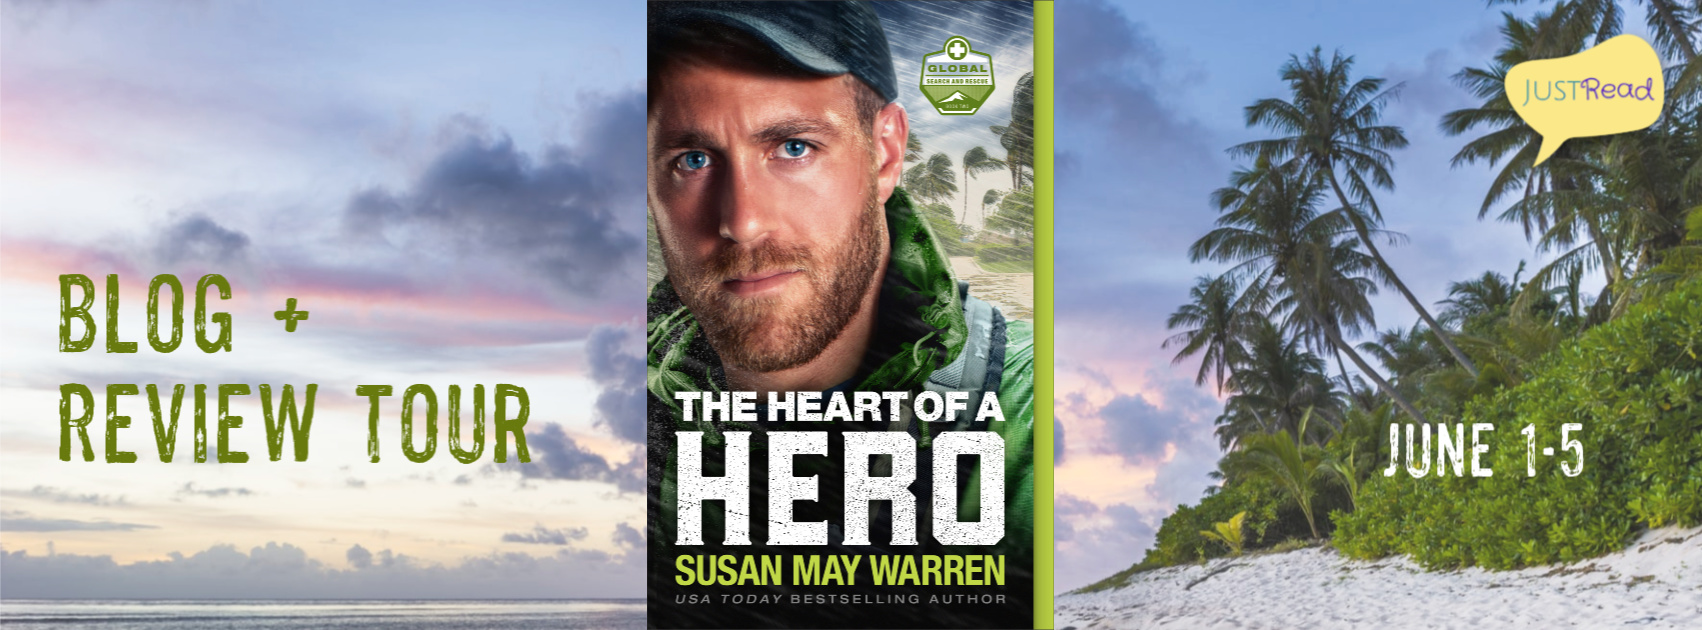 Welcome to The Heart of a Hero Blog Tour & Giveaway!